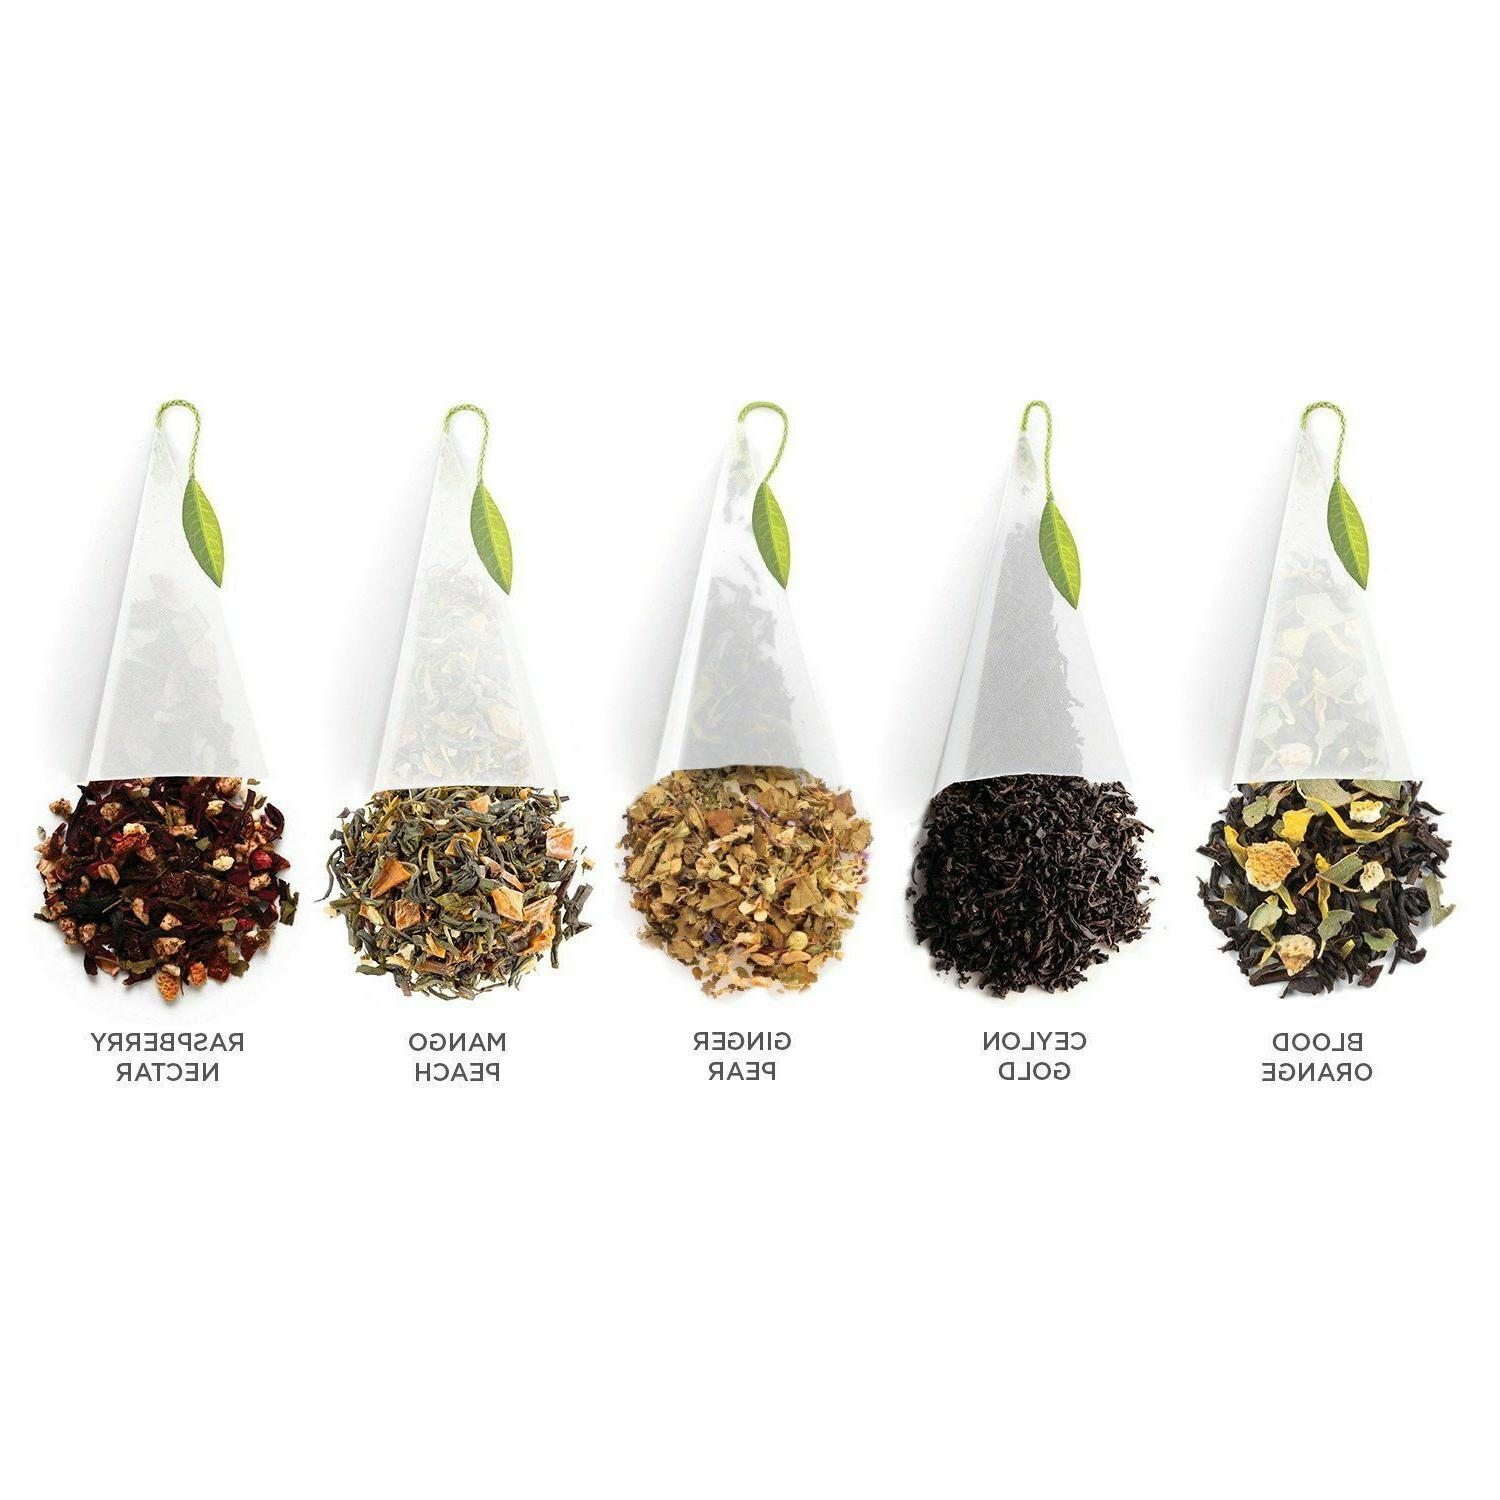 TEA TEA OVER ICE PITCHER SIZED ICED INFUSERS BAGS ~ COLD sampler